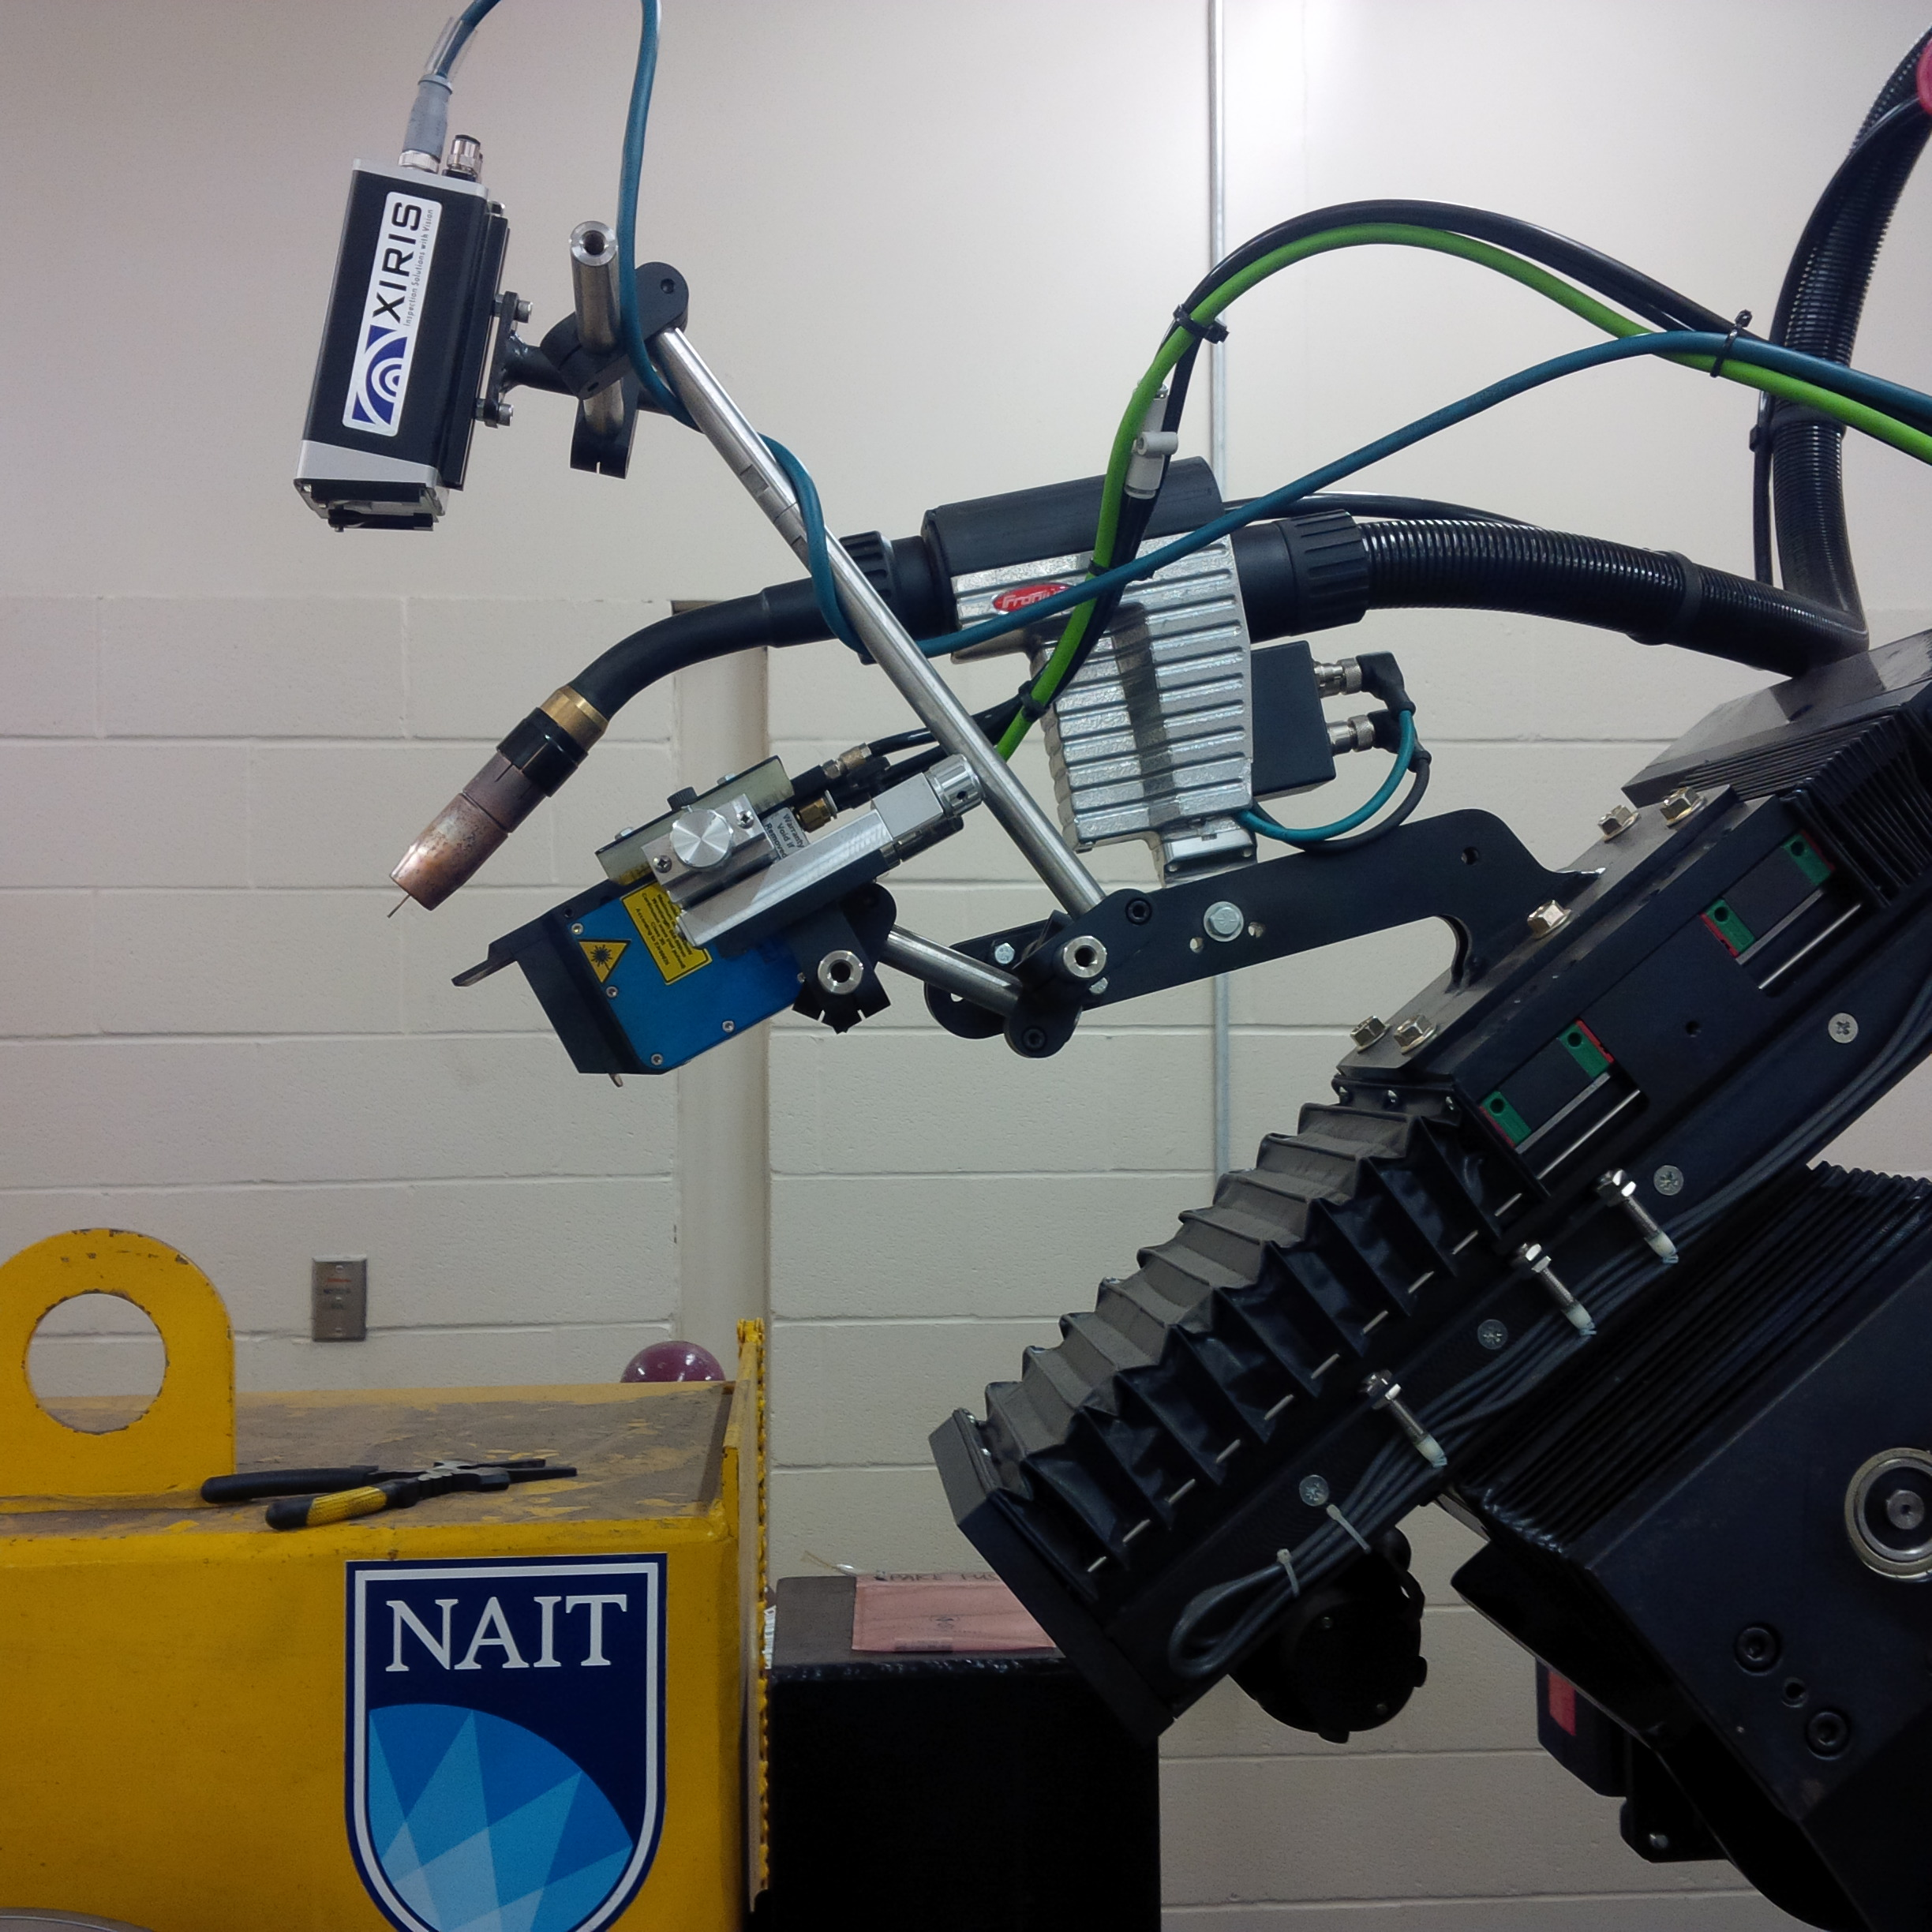 NAIT Installed side